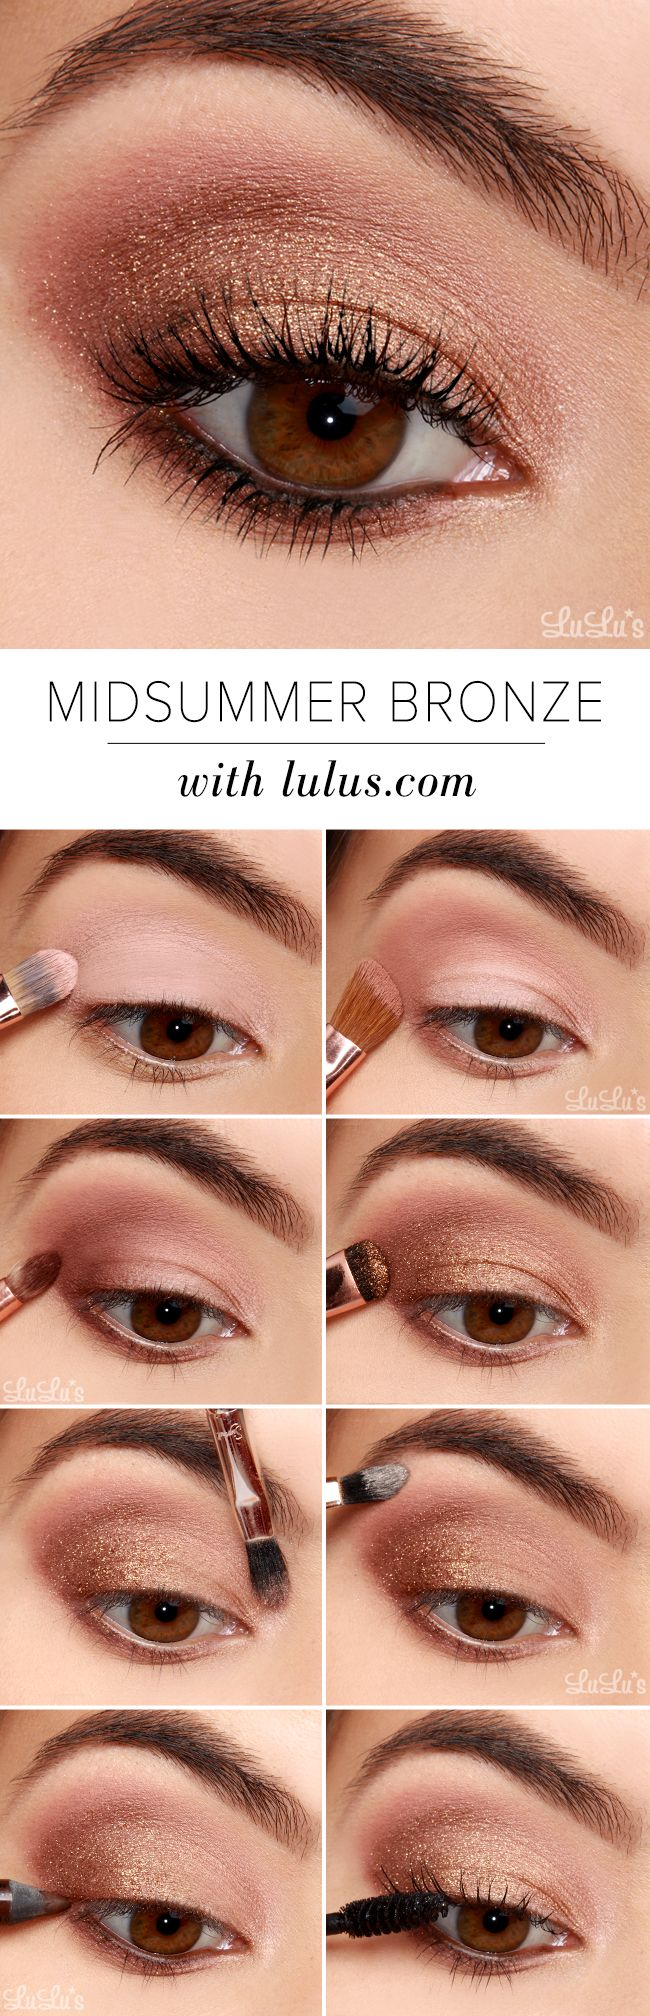 How-To: Midsummer Bronze Eyeshadow Tutorial with Sigma!